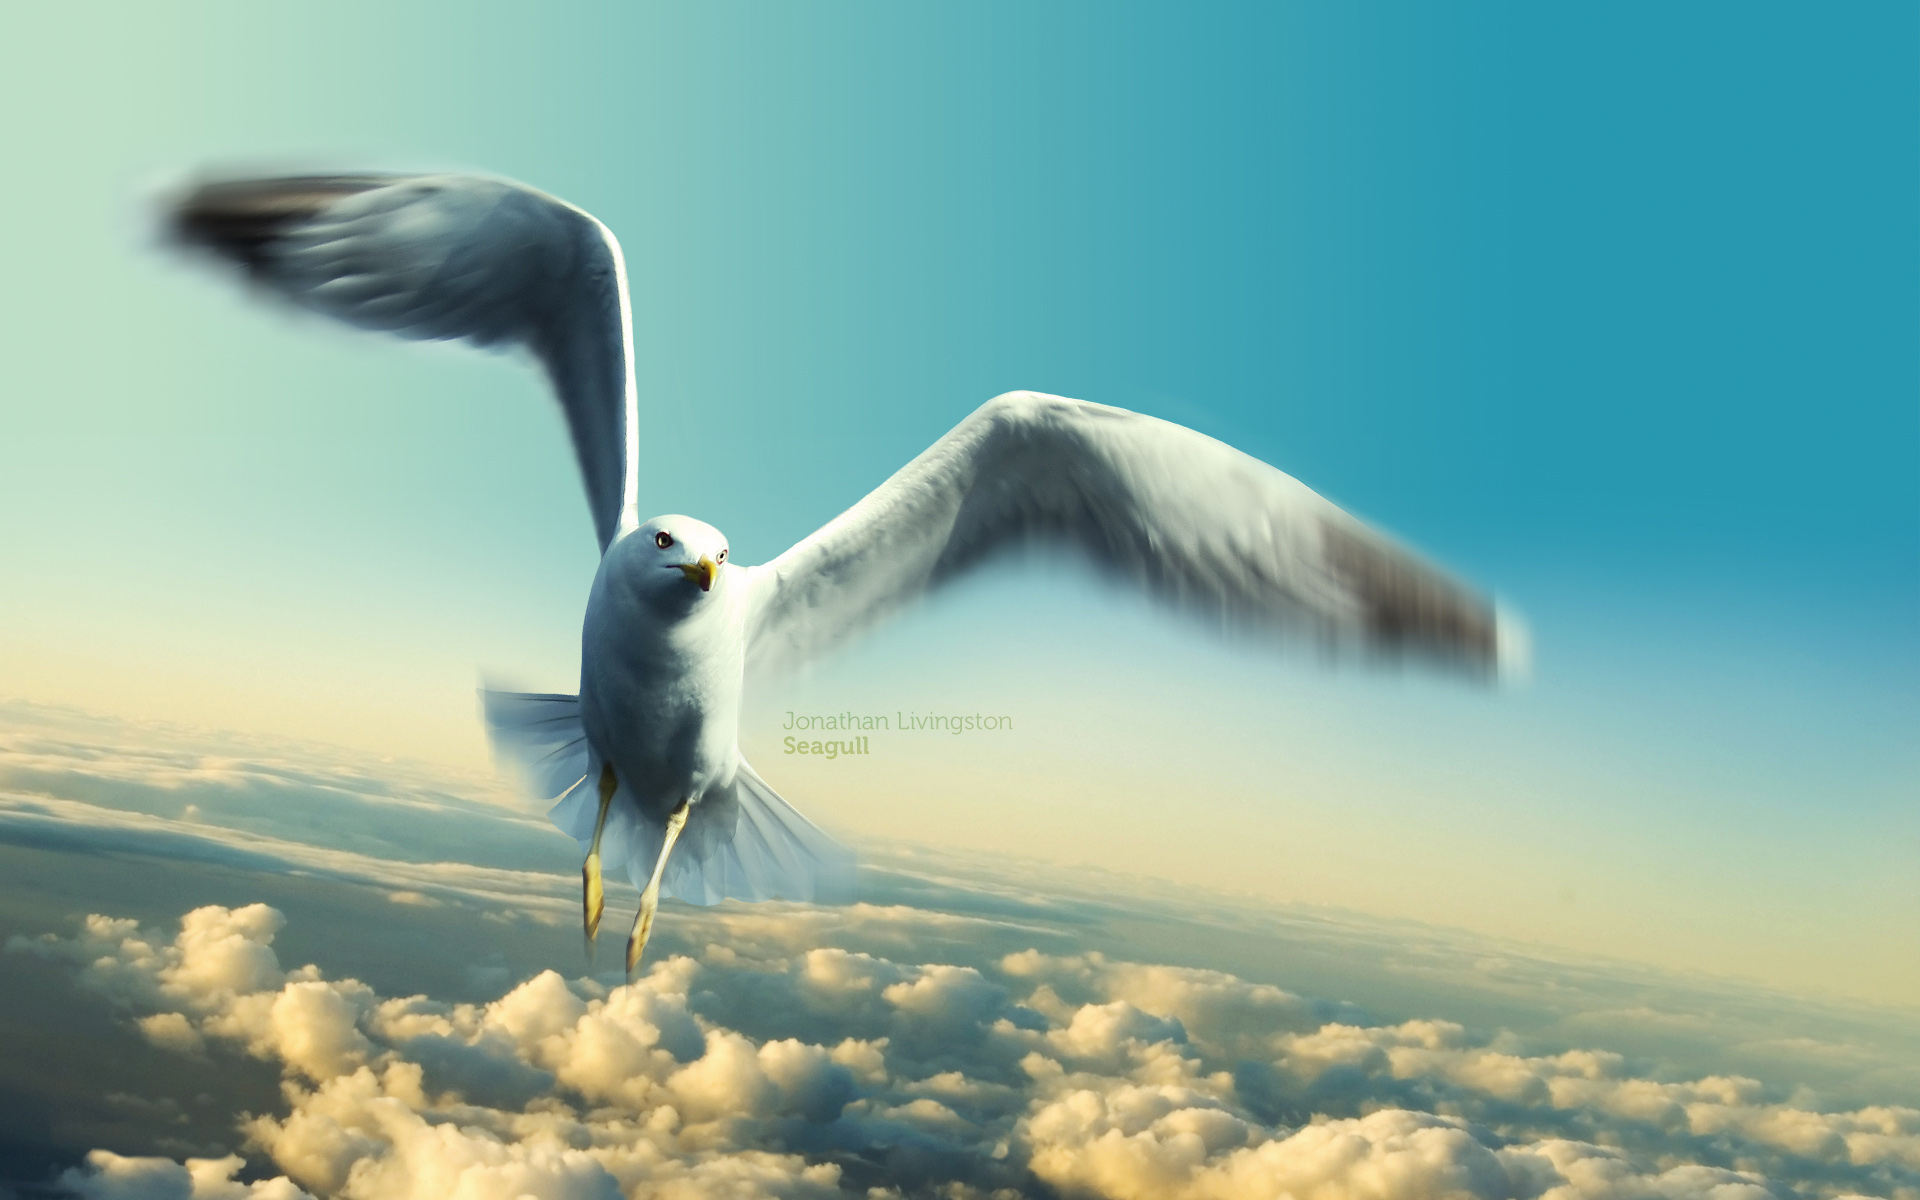 Animals & Birds Jonathan Livingston Seagull wallpaper